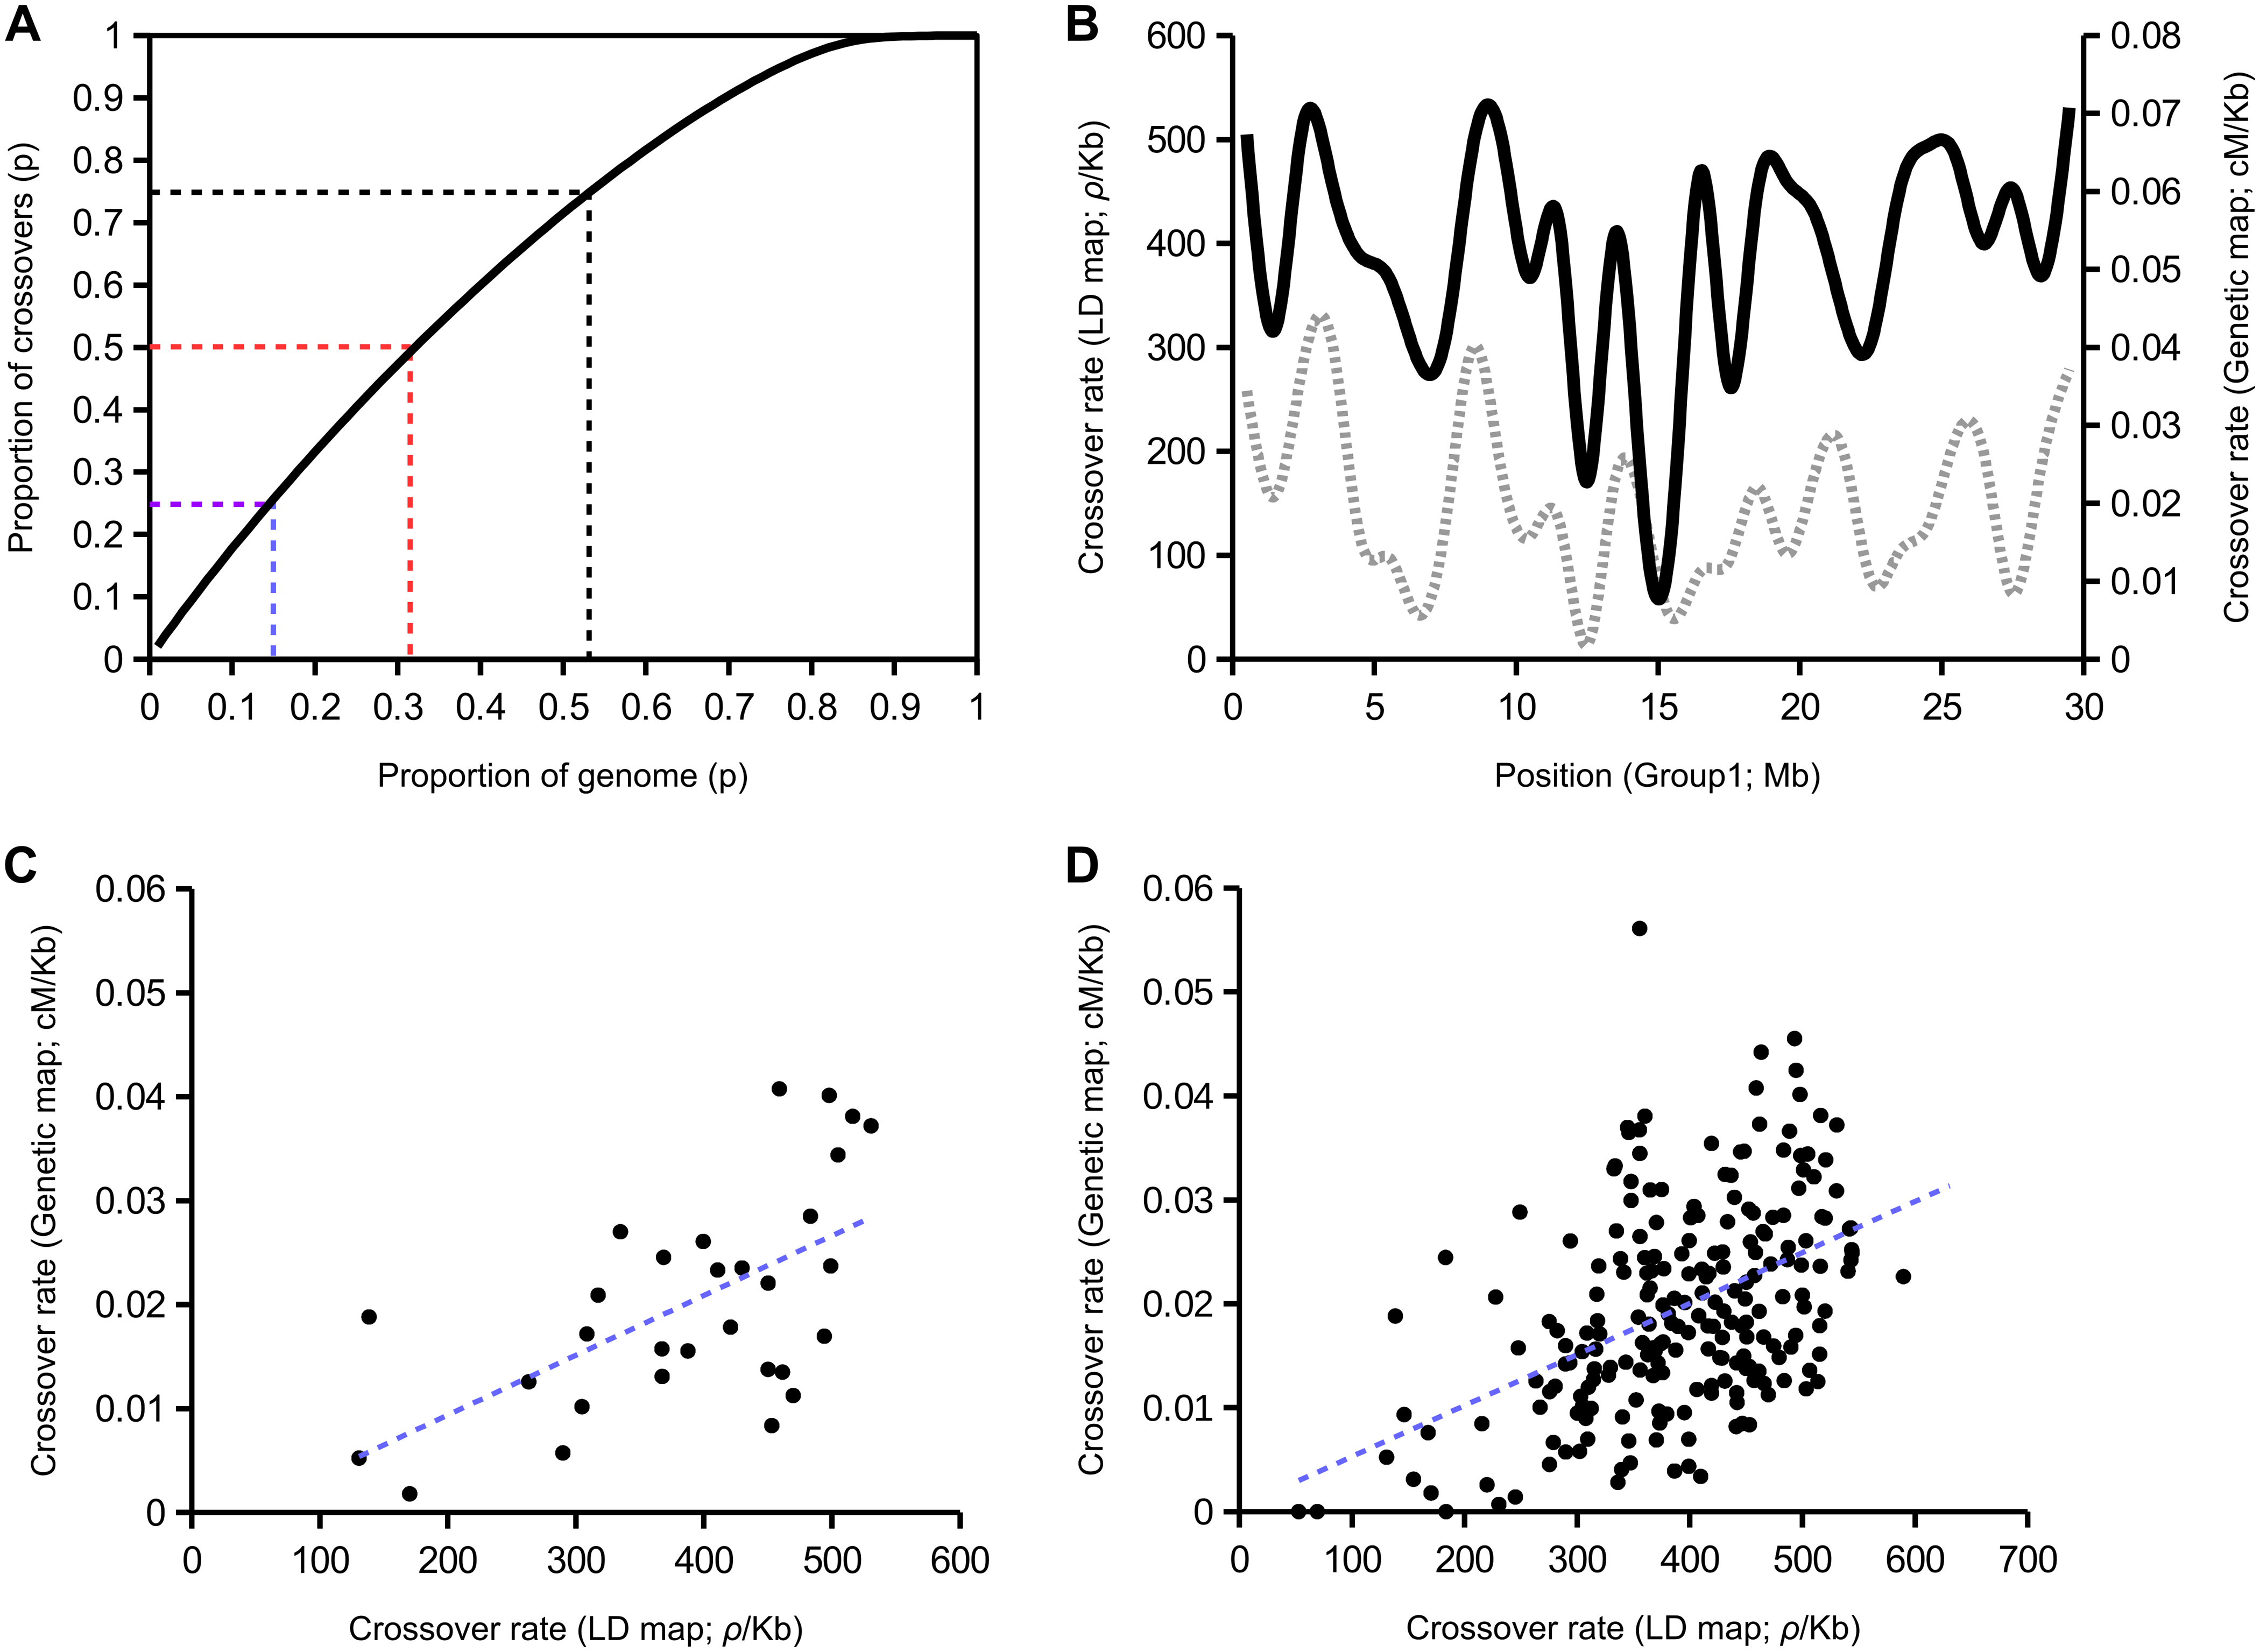 Population recombination rates inferred from linkage disequilibrium among SNPs using LDHAT in comparison with a genetic map [<em class=&quot;ref&quot;>3</em>].